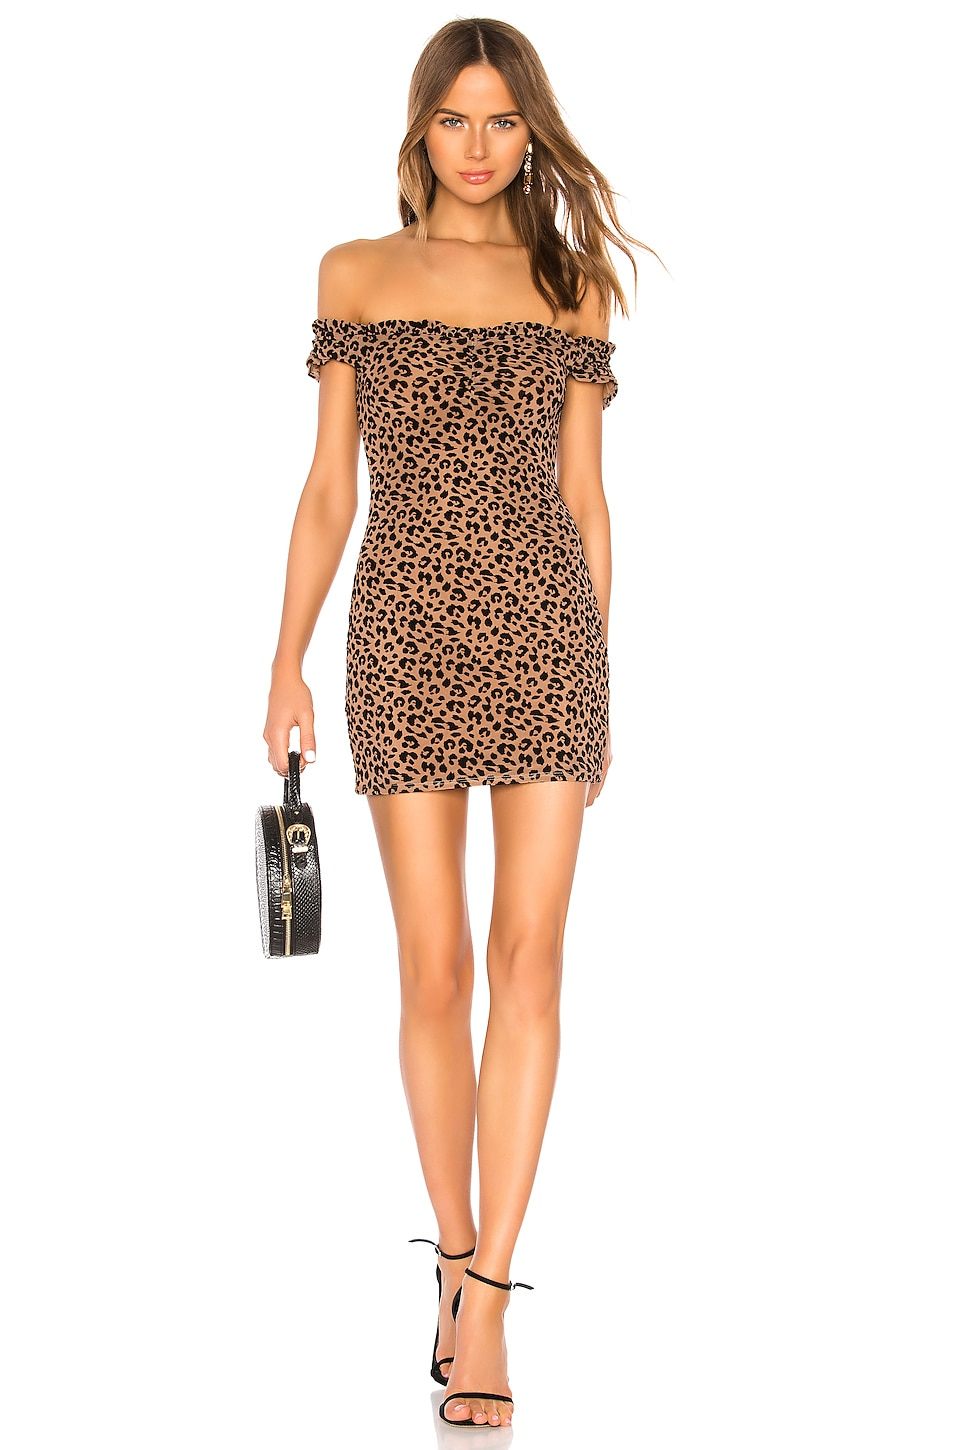 MAJORELLE Darcy Mini Dress in Tan Leopard